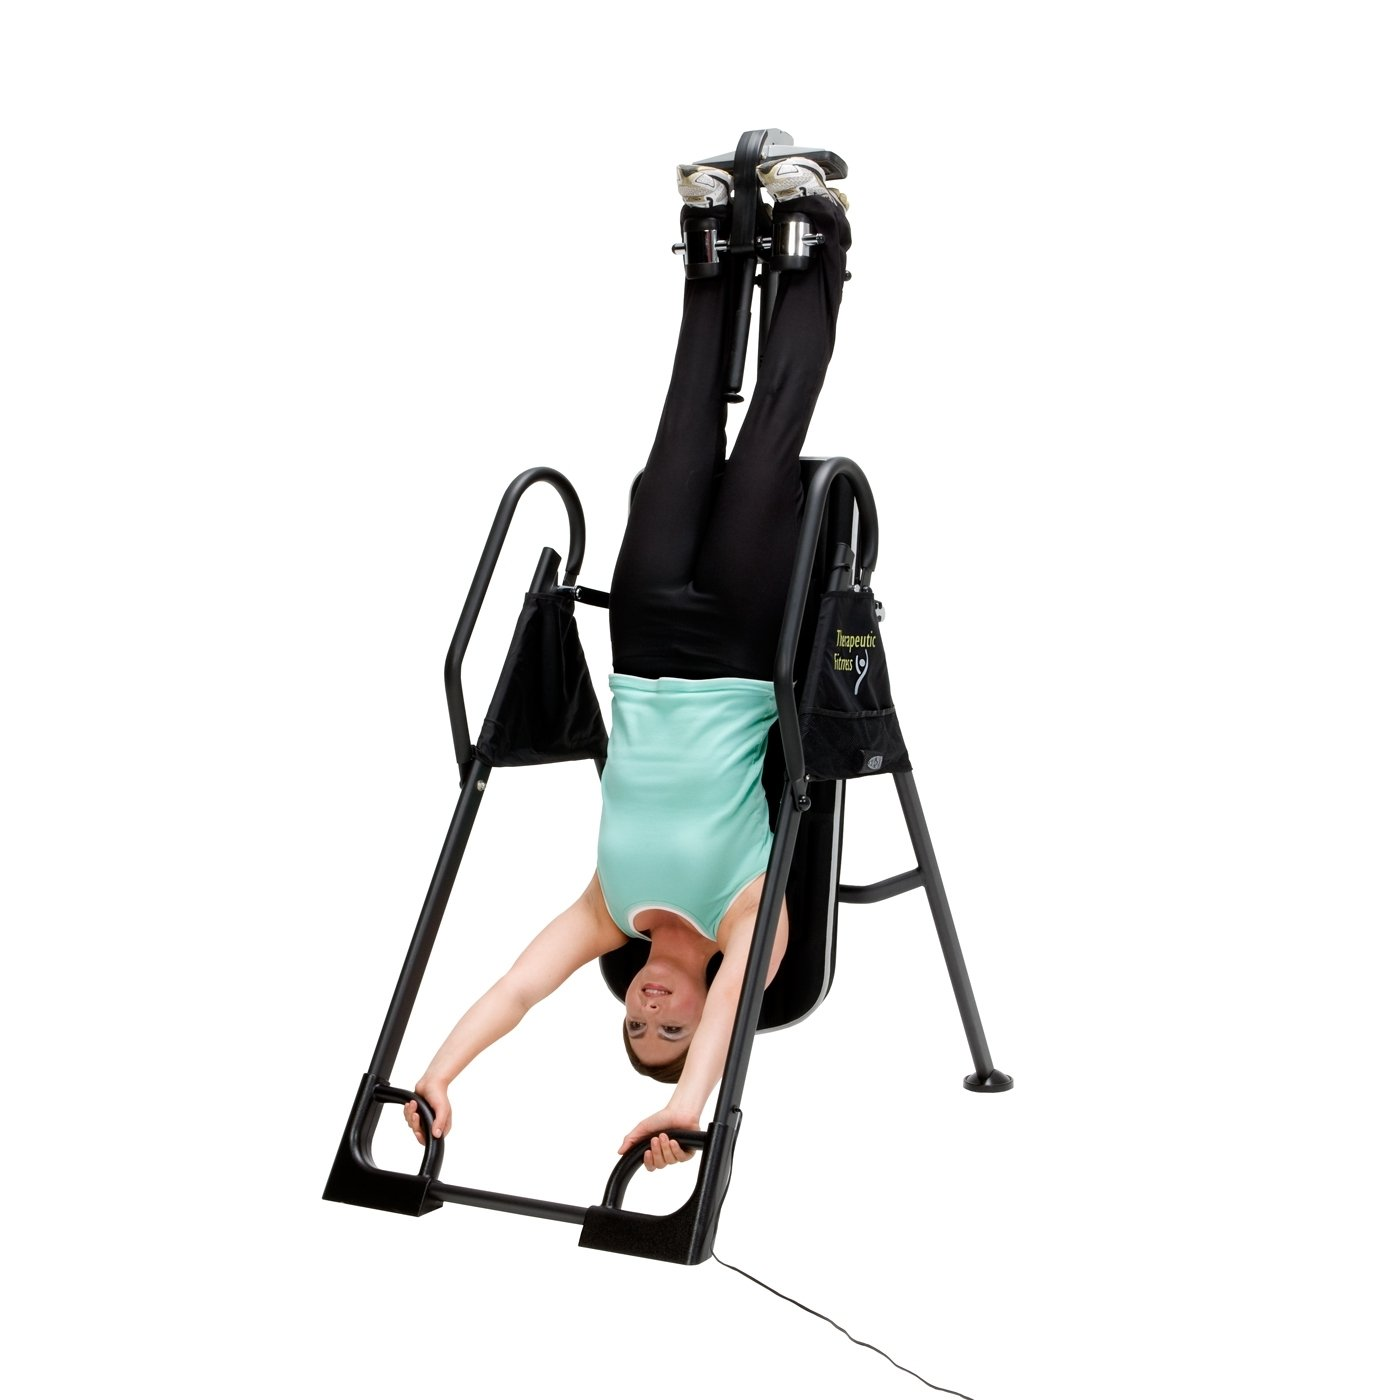 Heavy Duty Inversion Tables With High Weight Capacities